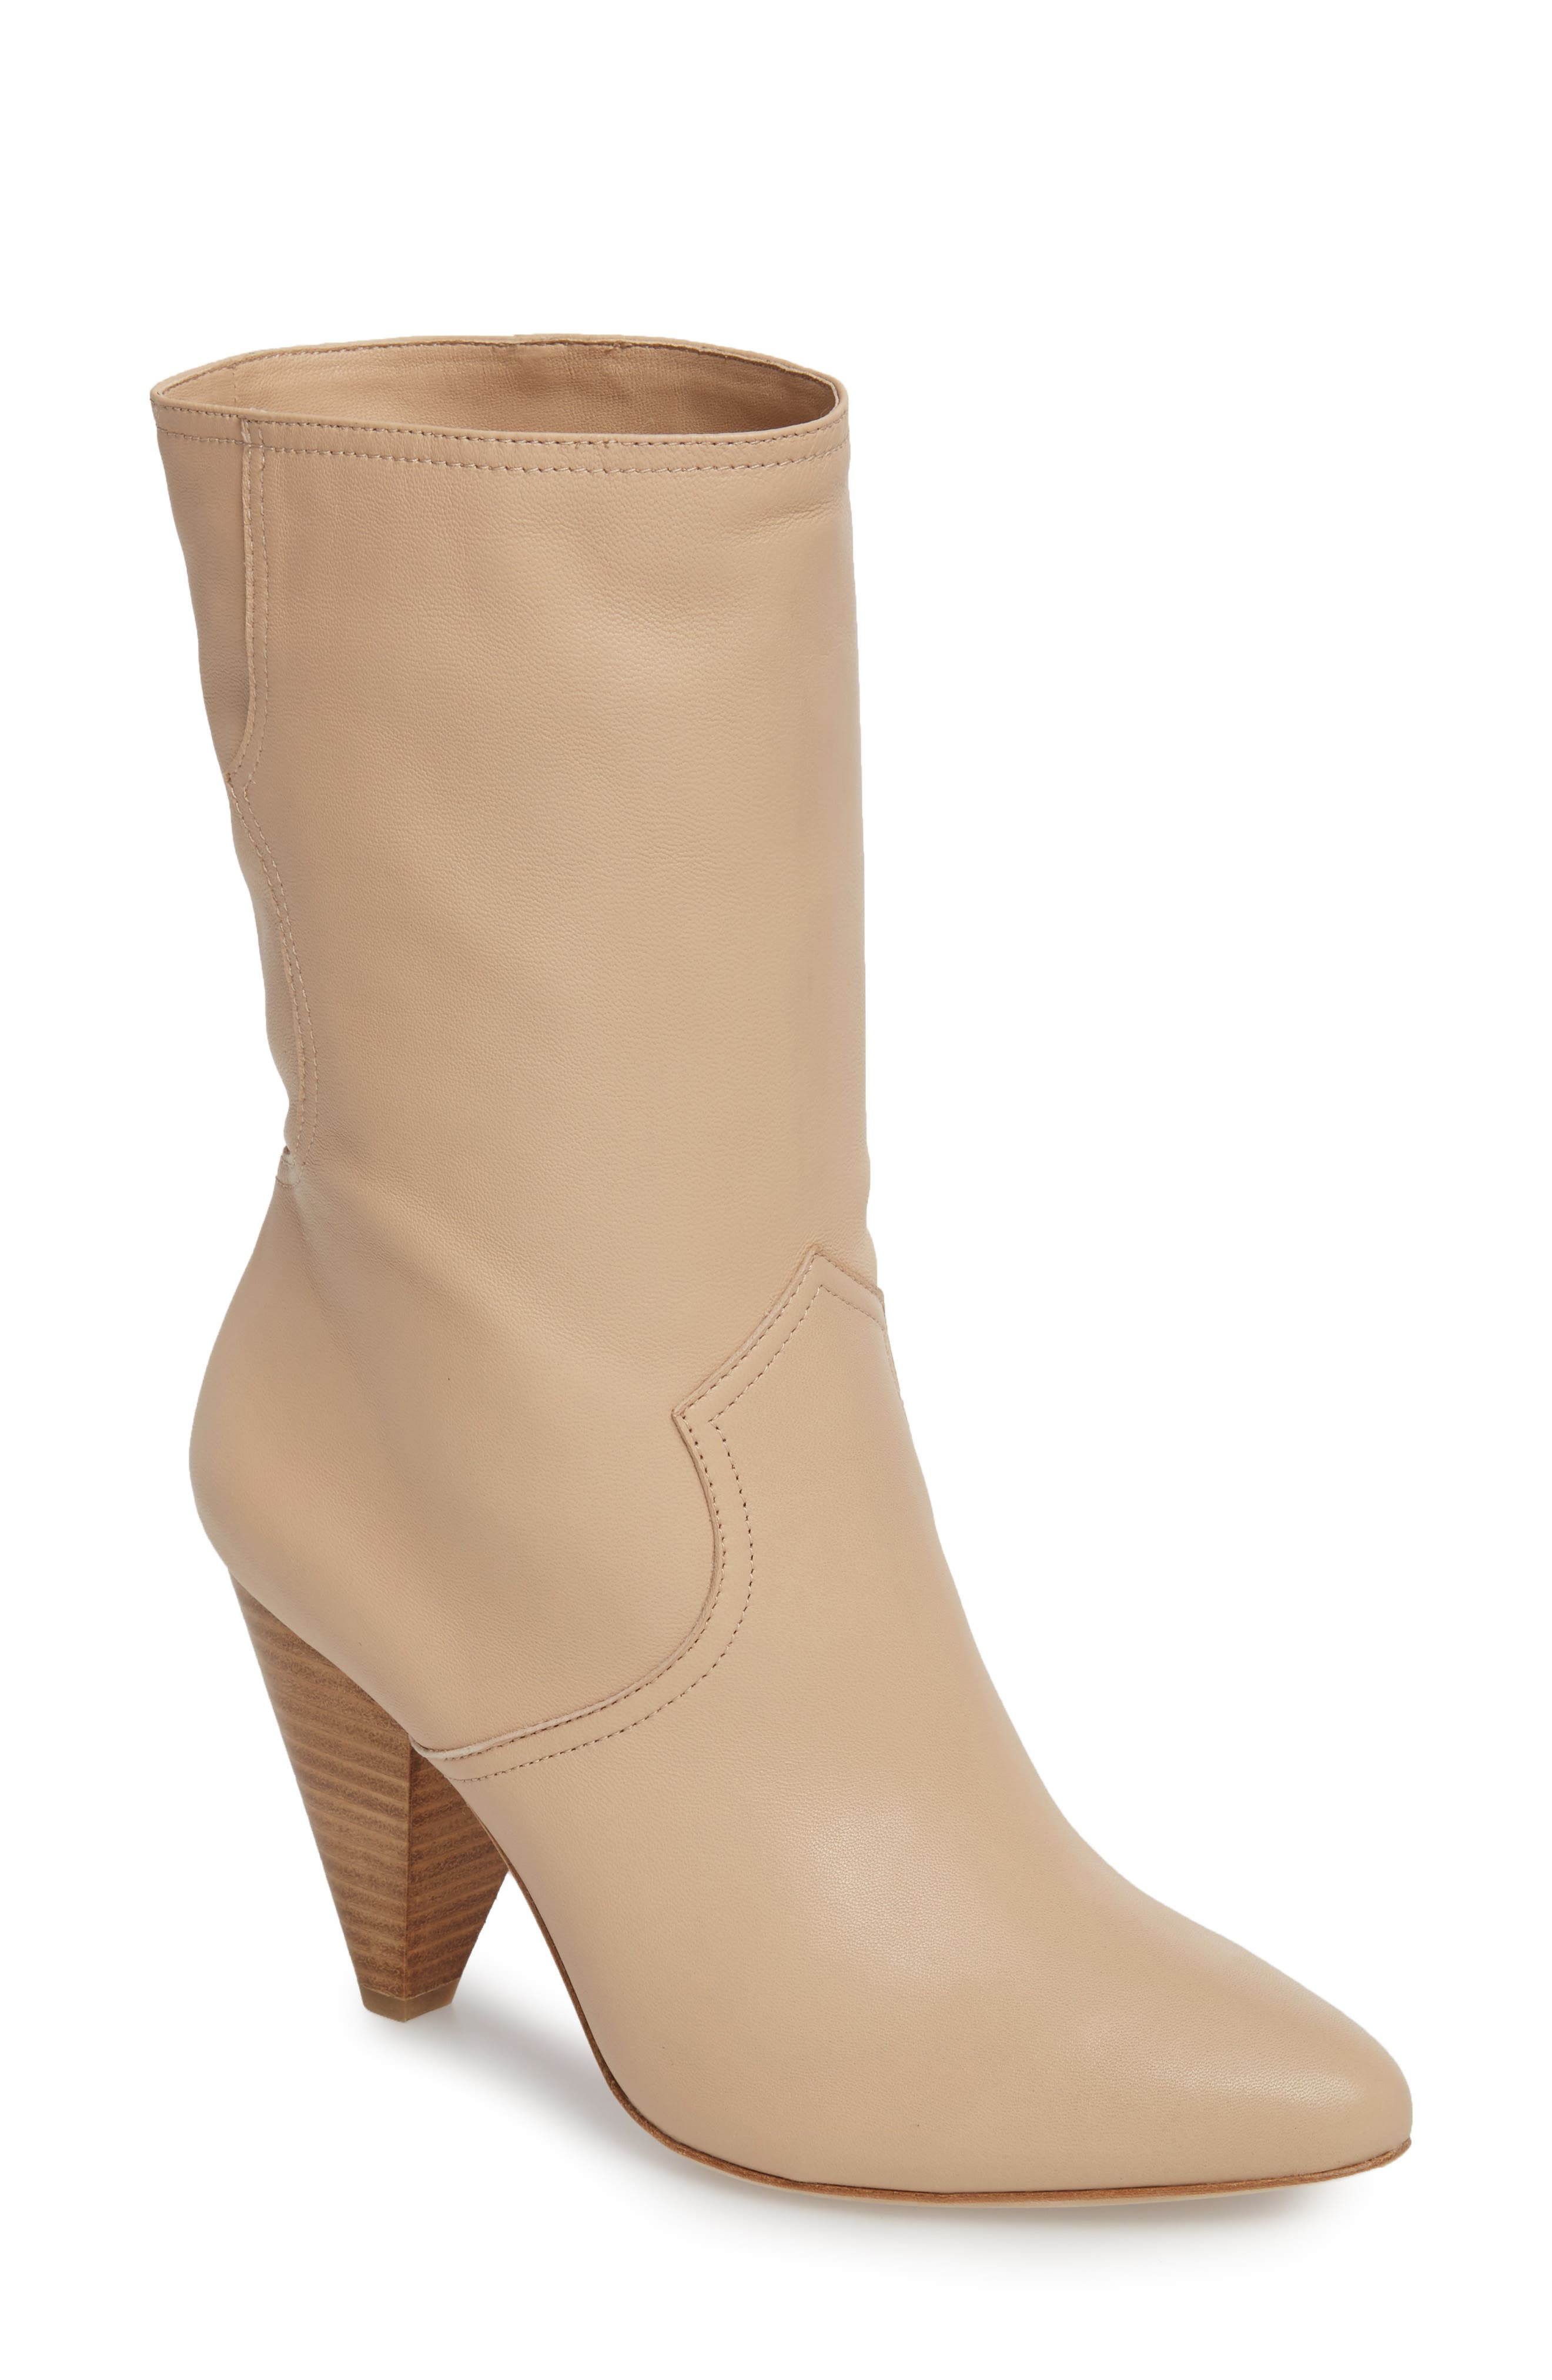 Gabbissy Almond Toe Boot,                         Main,                         color, Blush